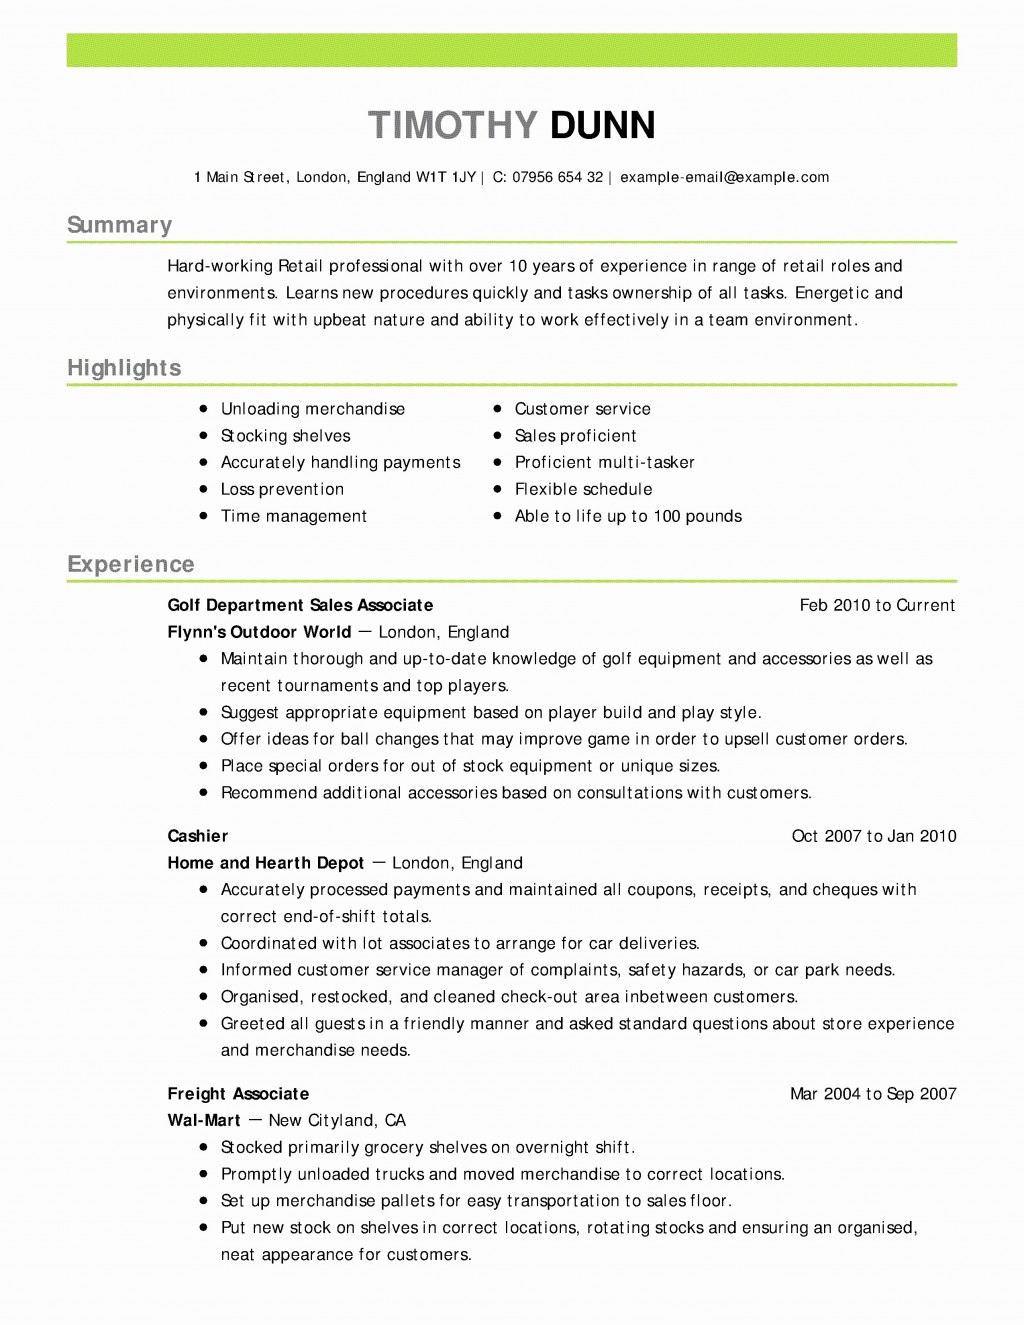 020 Short Essay Example Awesome Inspirational Stock Luxury Sample Military Resume To Civilian Examples Shocking Answer Rubric Apush About Slavery In America Questions Internal Medicine Large